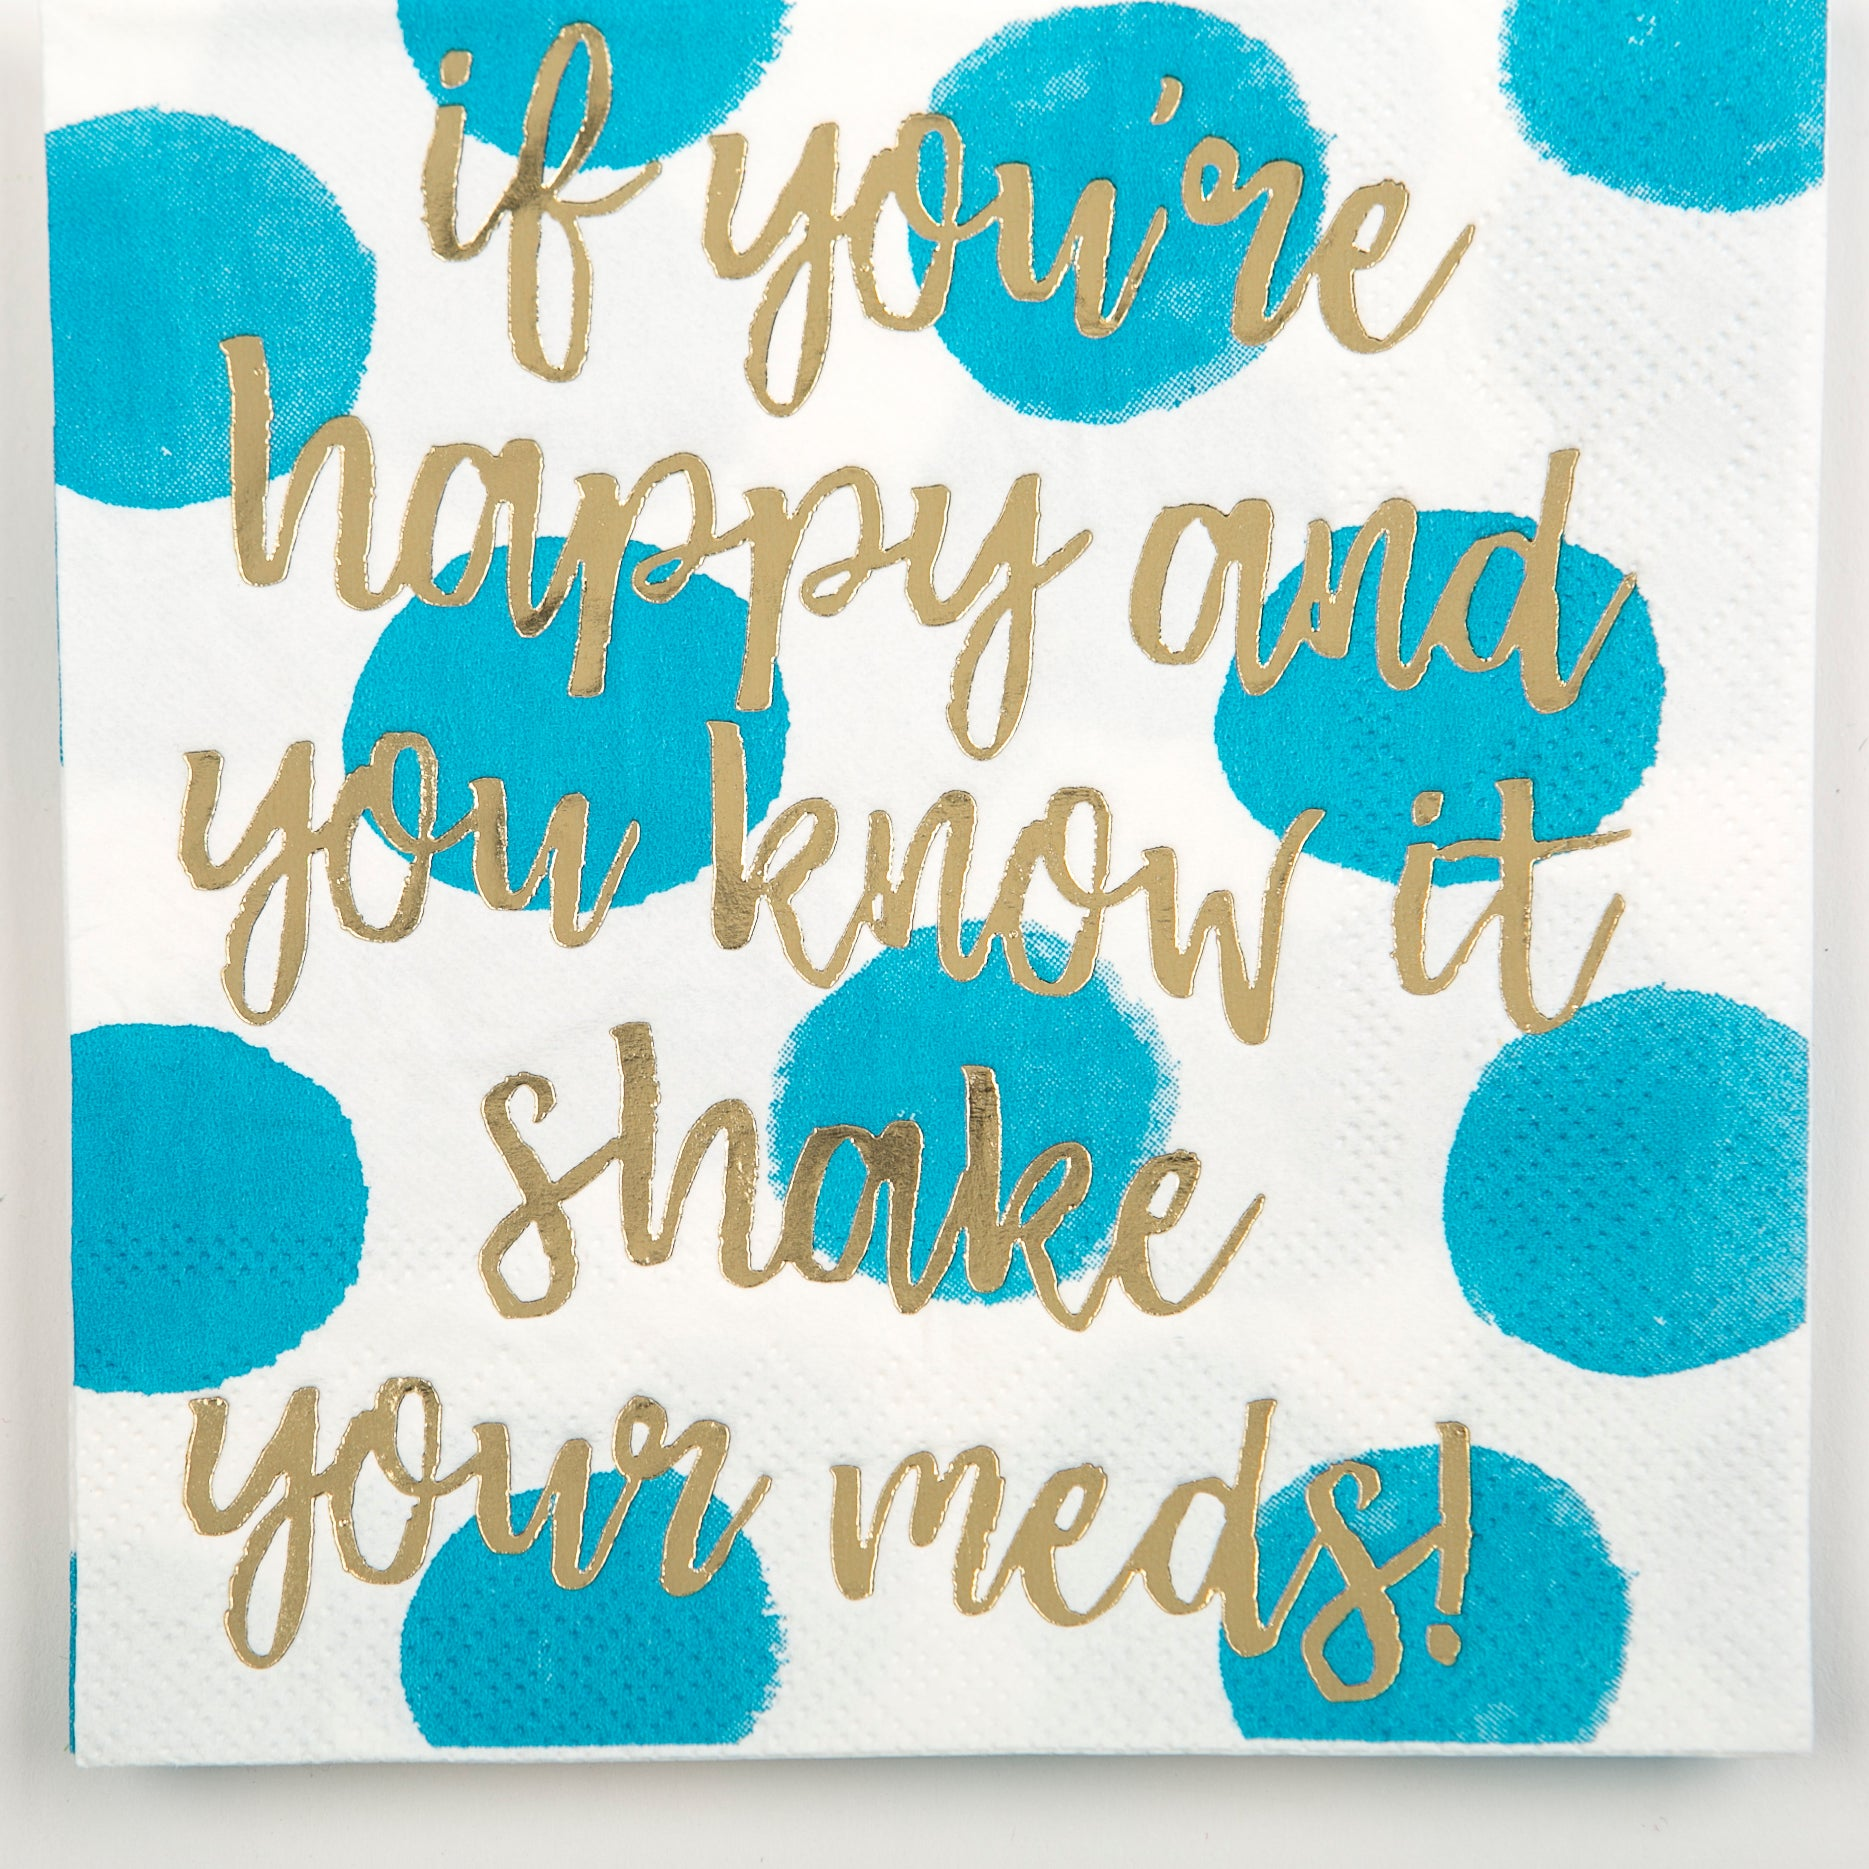 Beverage Napkin - If You're Happy and You Know it Shake Your Meds!